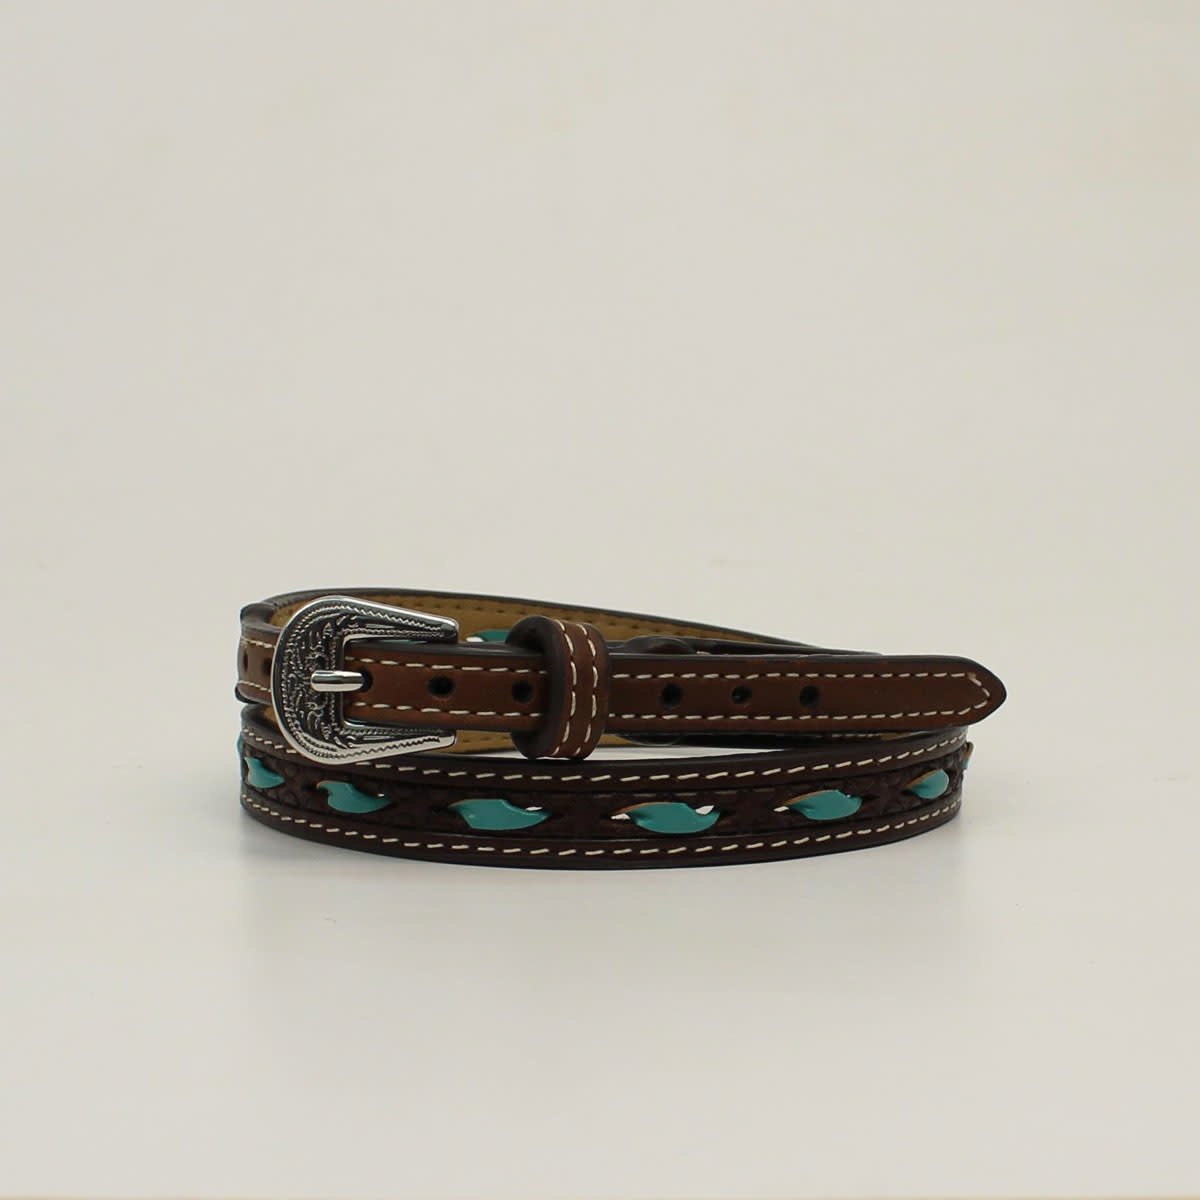 Hat Band - Brown Leather with Turquoise Lacing